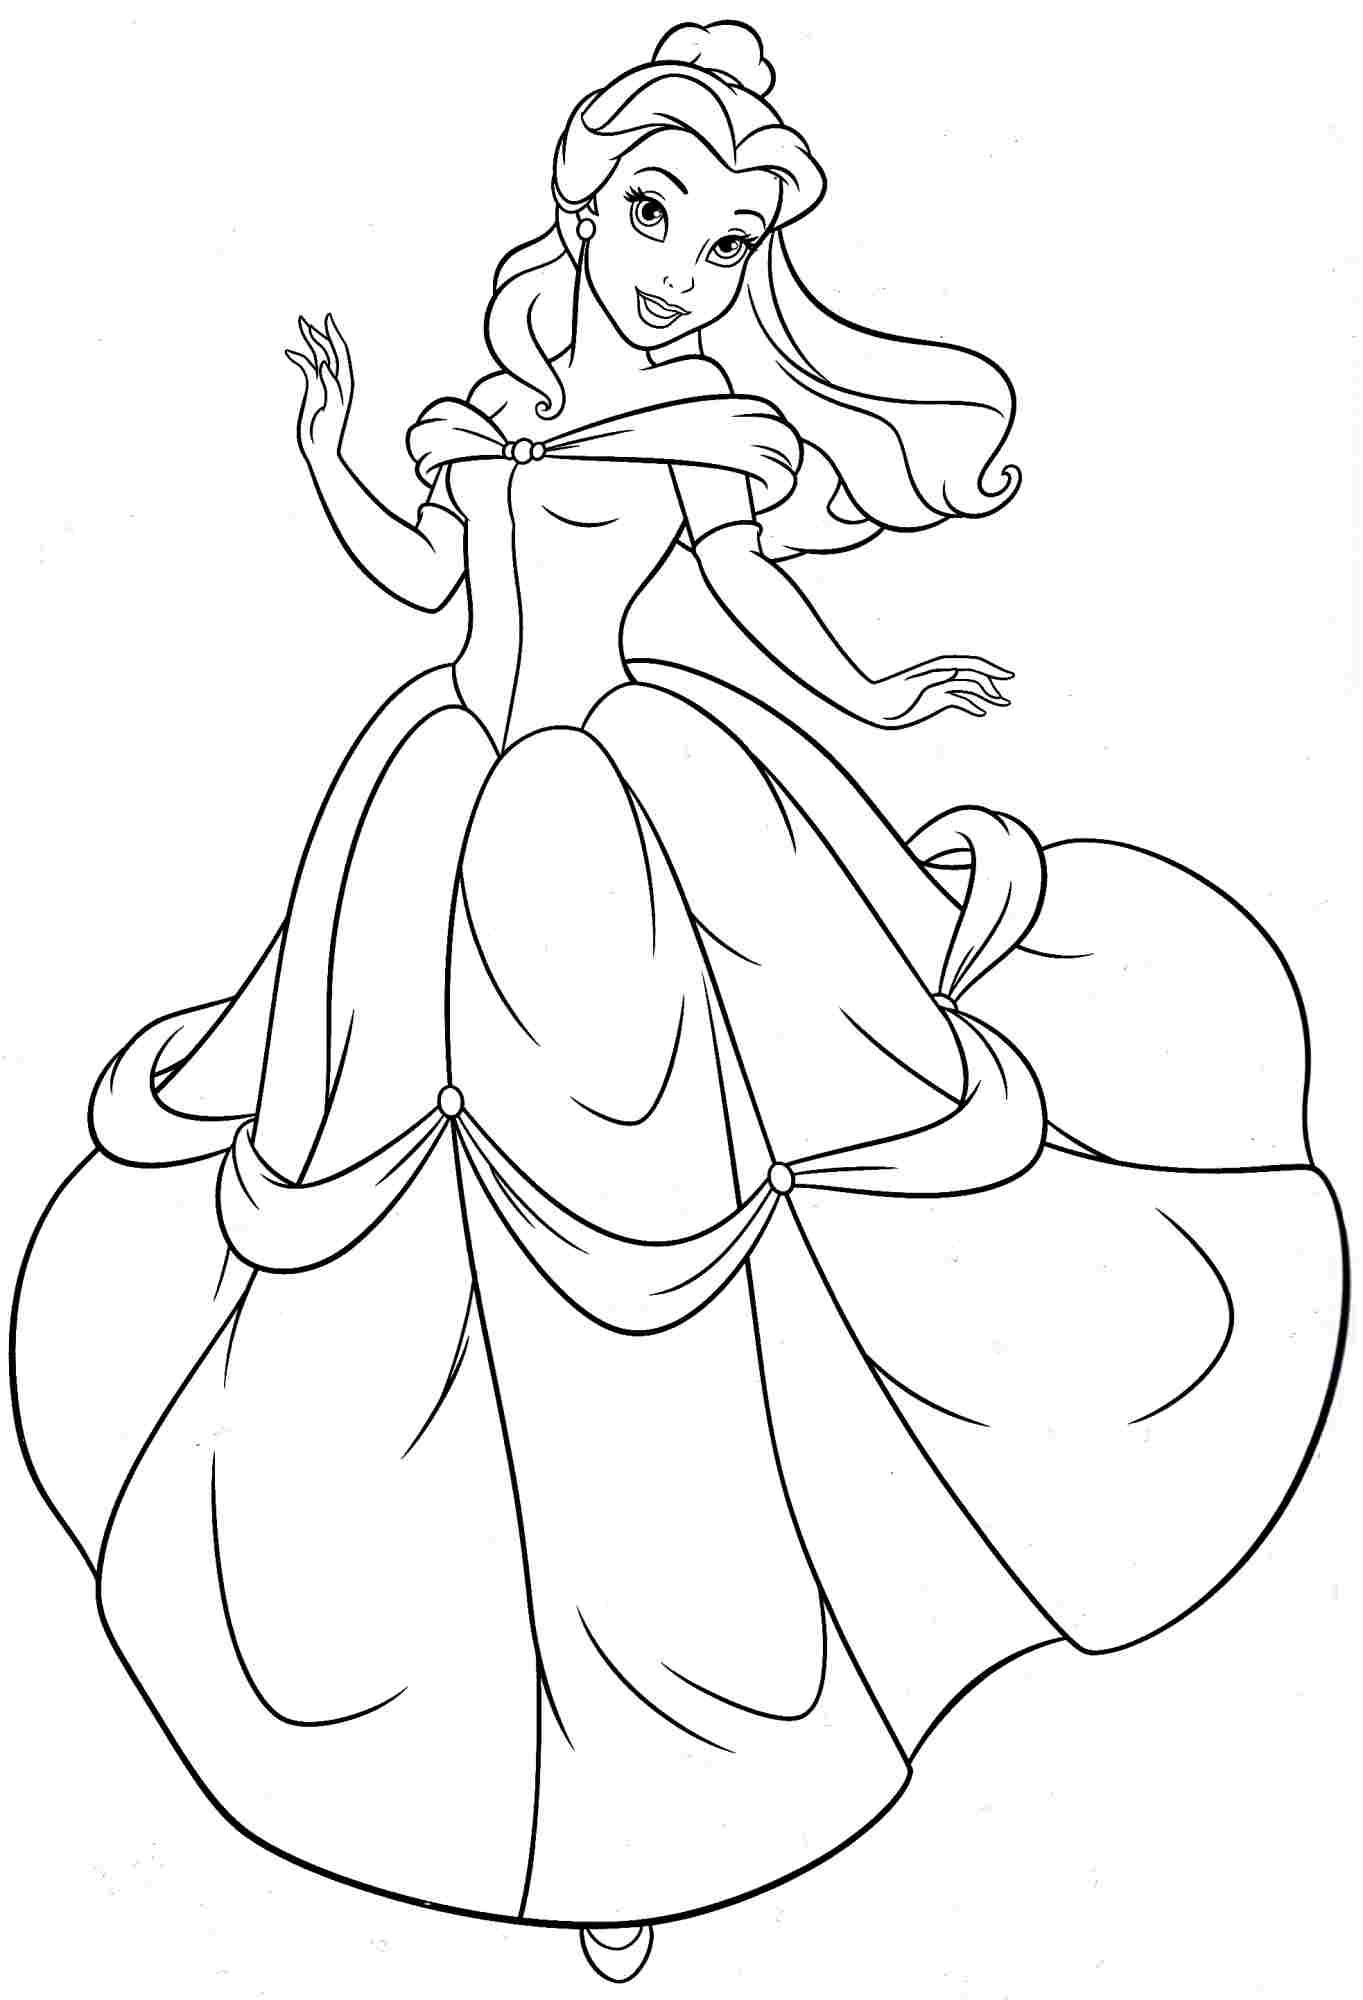 Free Coloring Pages Download Disney Princess Belle Colouring Pictures Of